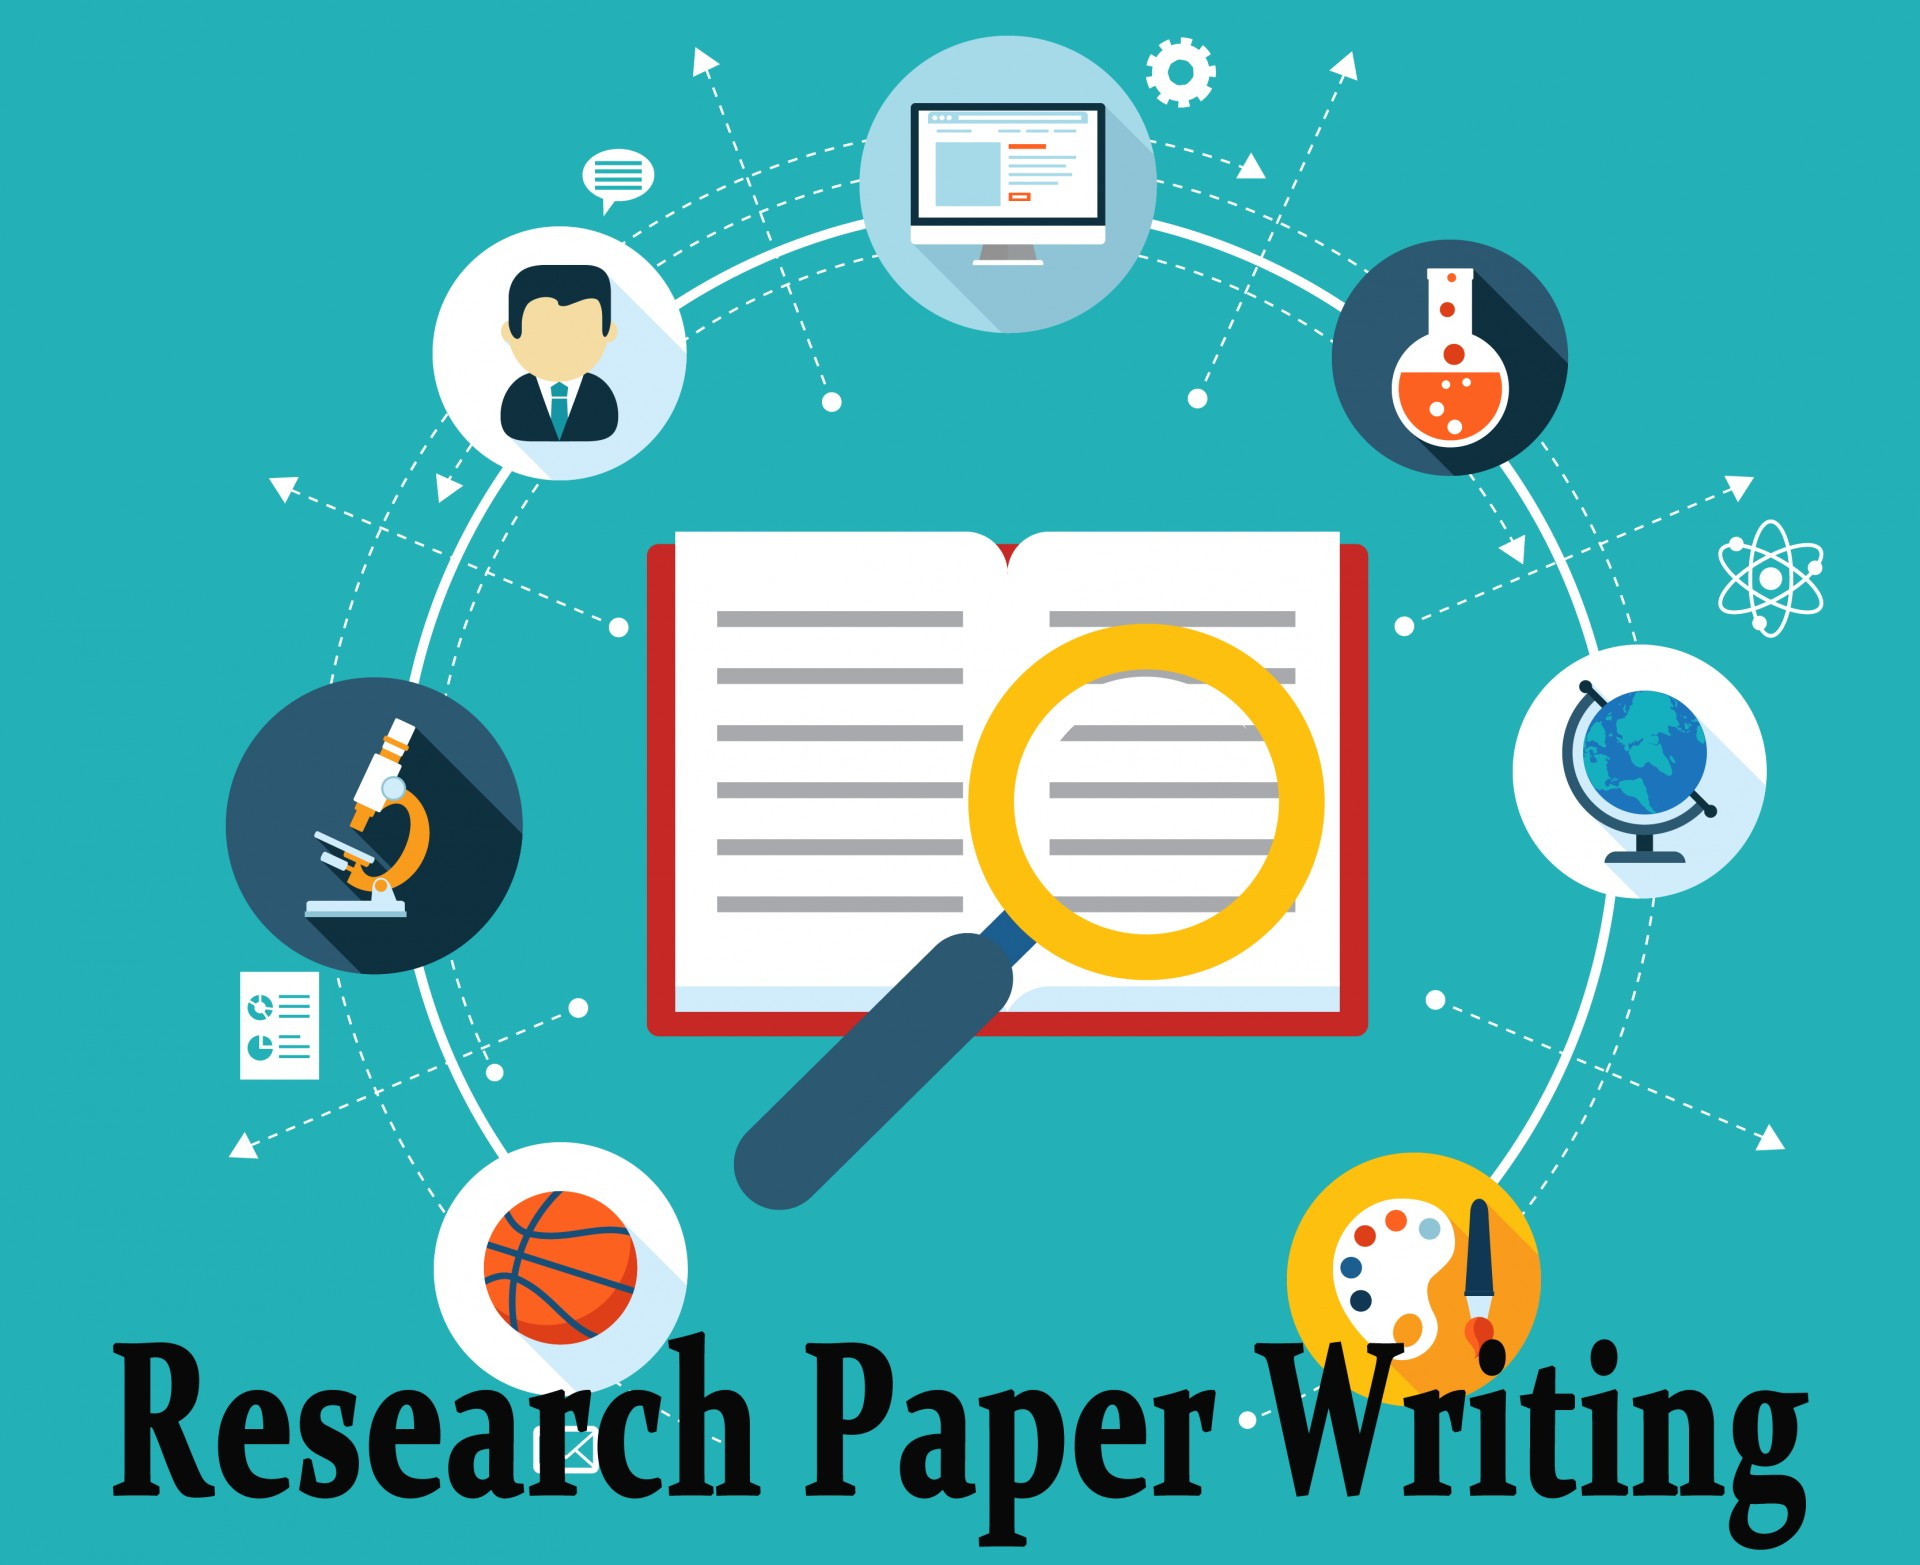 009 Writing The Research Paper 503 Effective Phenomenal Papers A Complete Guide 15th Edition Pdf Abstract Ppt Biomedical 1920